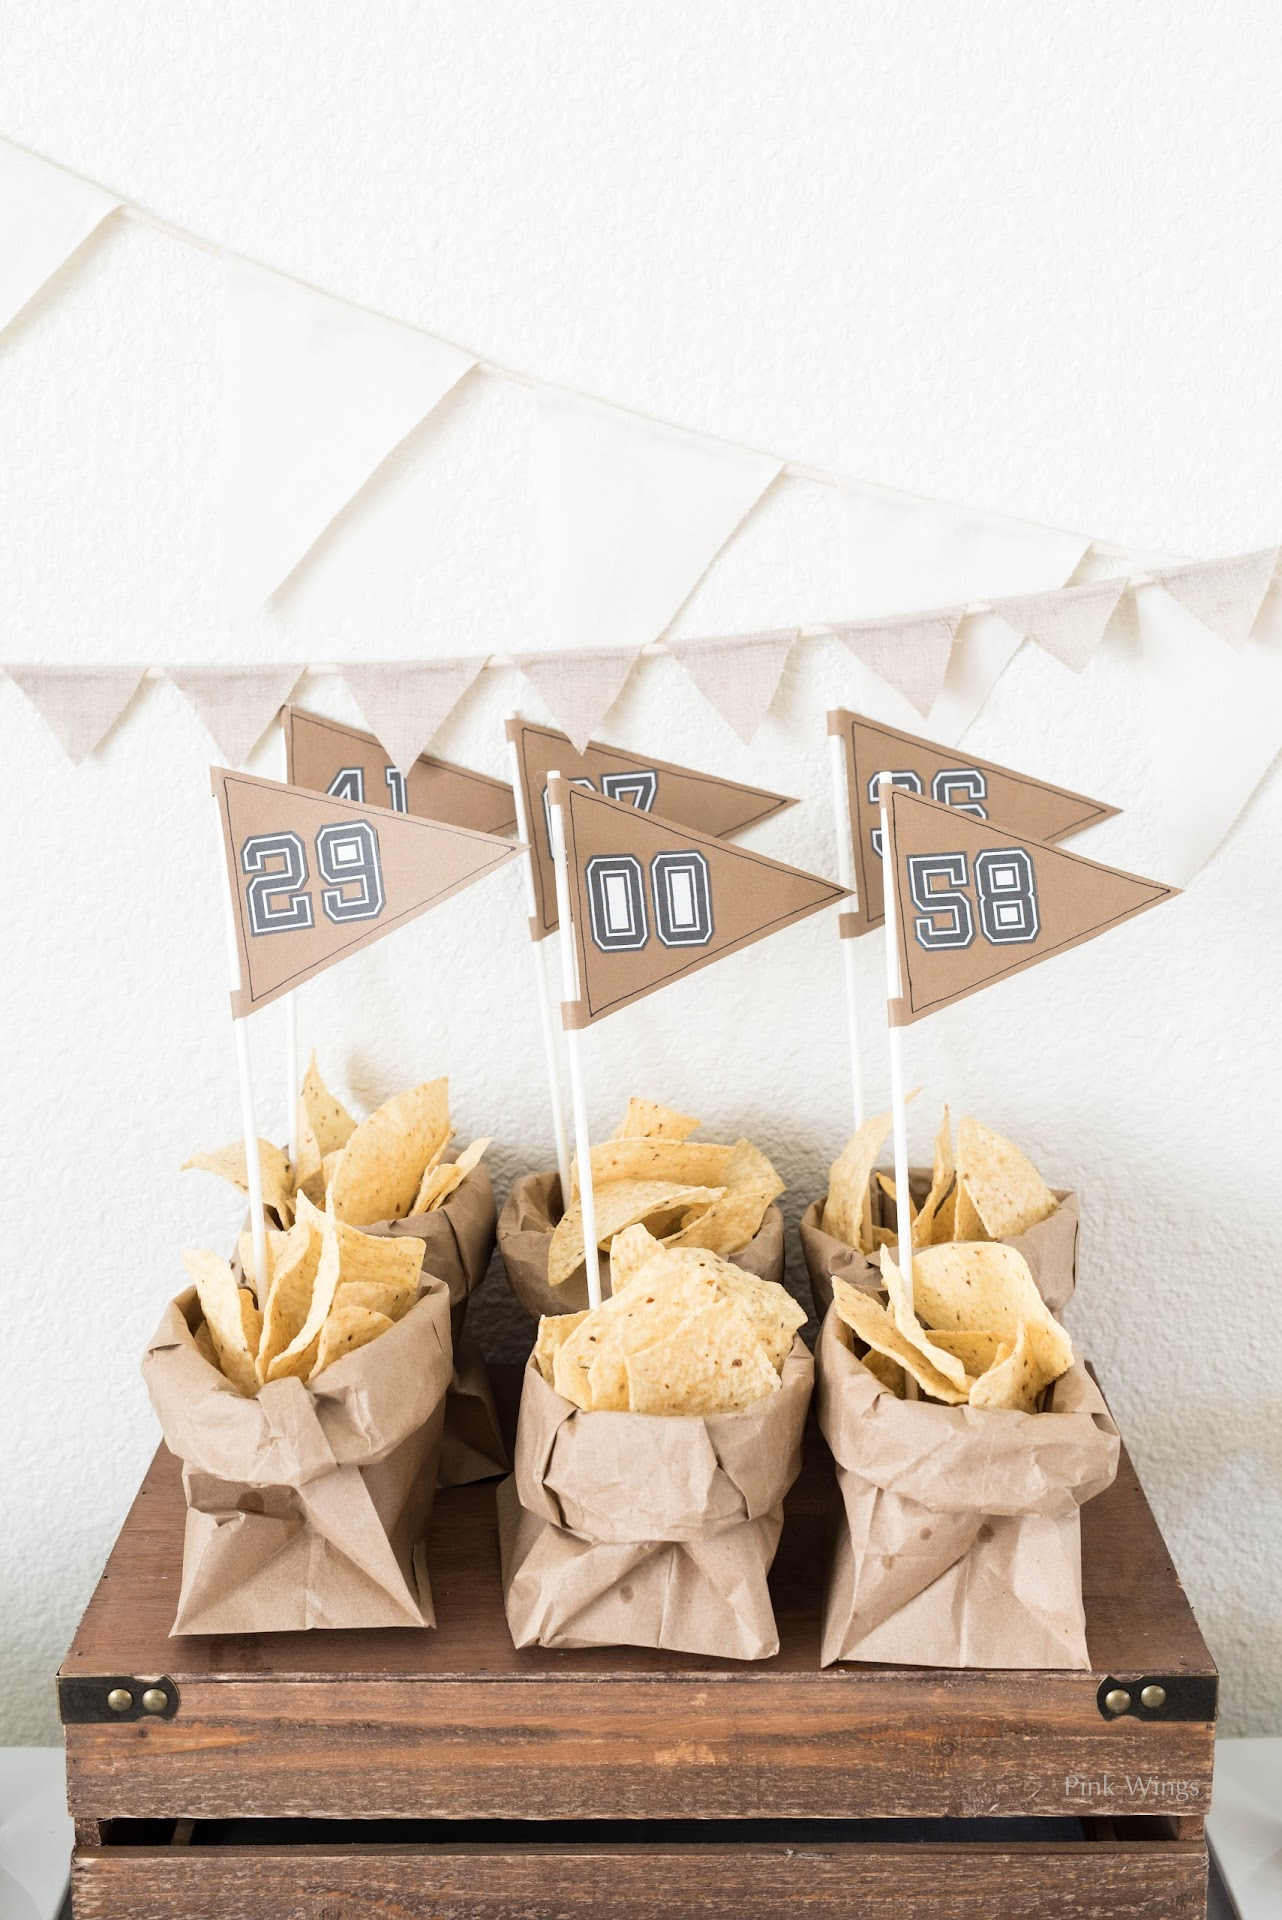 football party food ideas, football flag tutorial, pennant, football diy crafts, football party, birthday, tailgating, party food ideas, man food, man party, sports party, vintage, kraft burlap white theme, brown white,